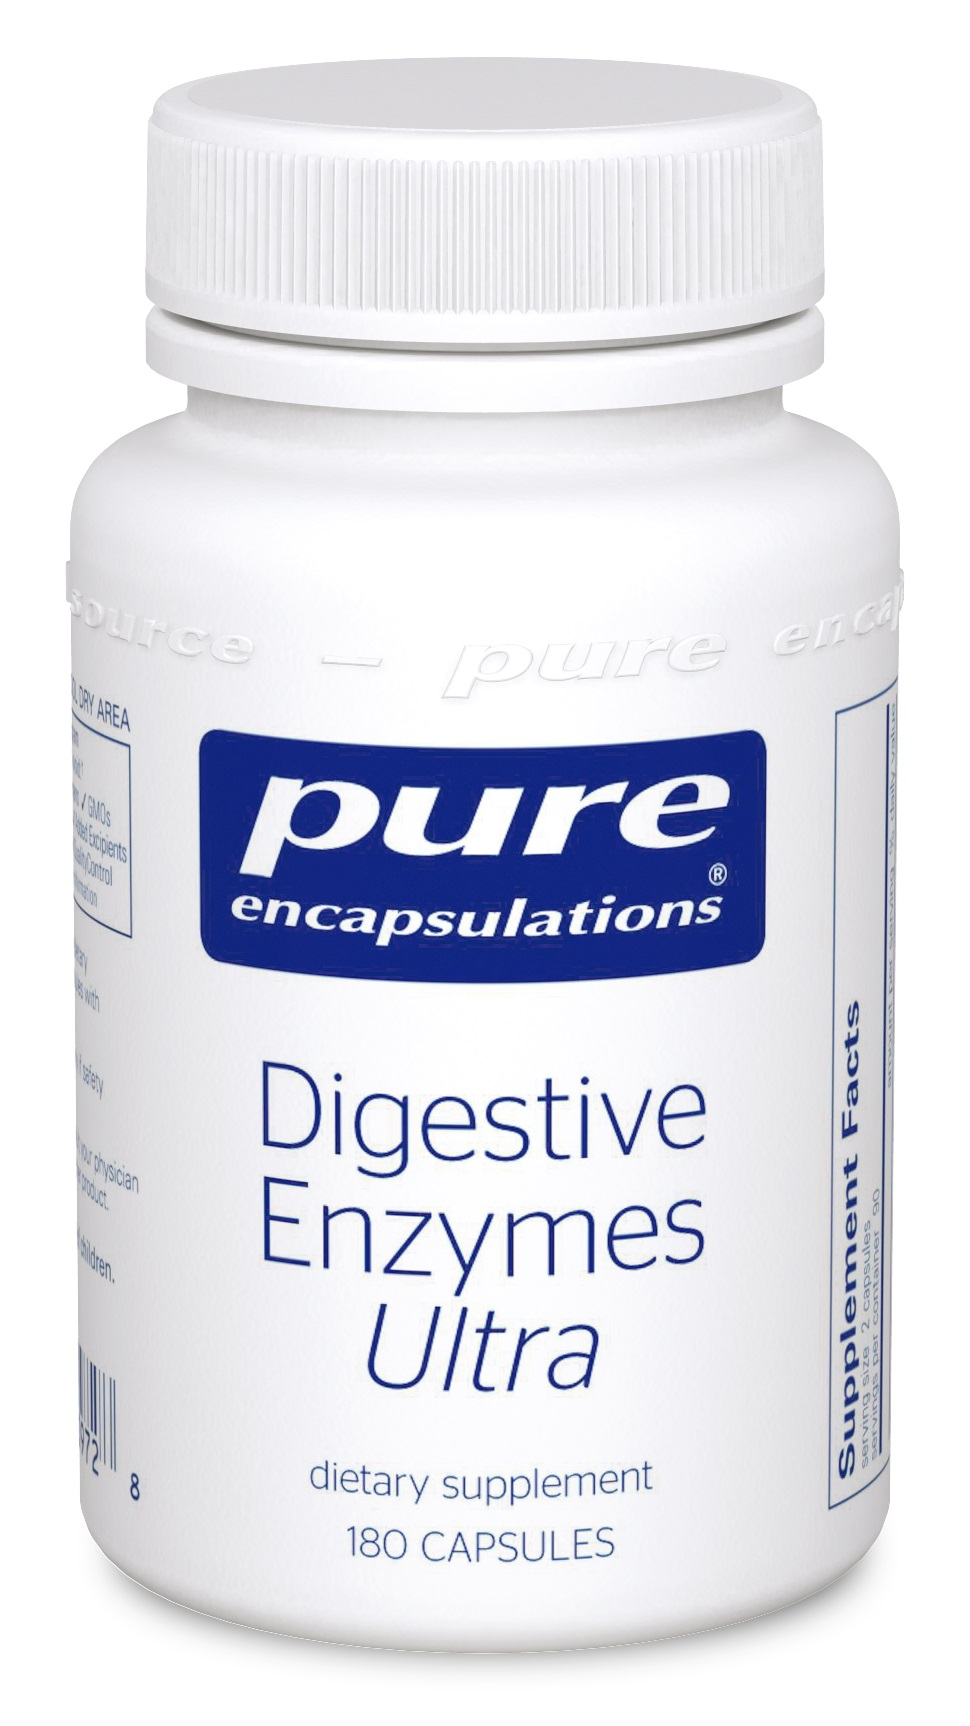 Pure Encapsulations Digestive Enzymes Ultra